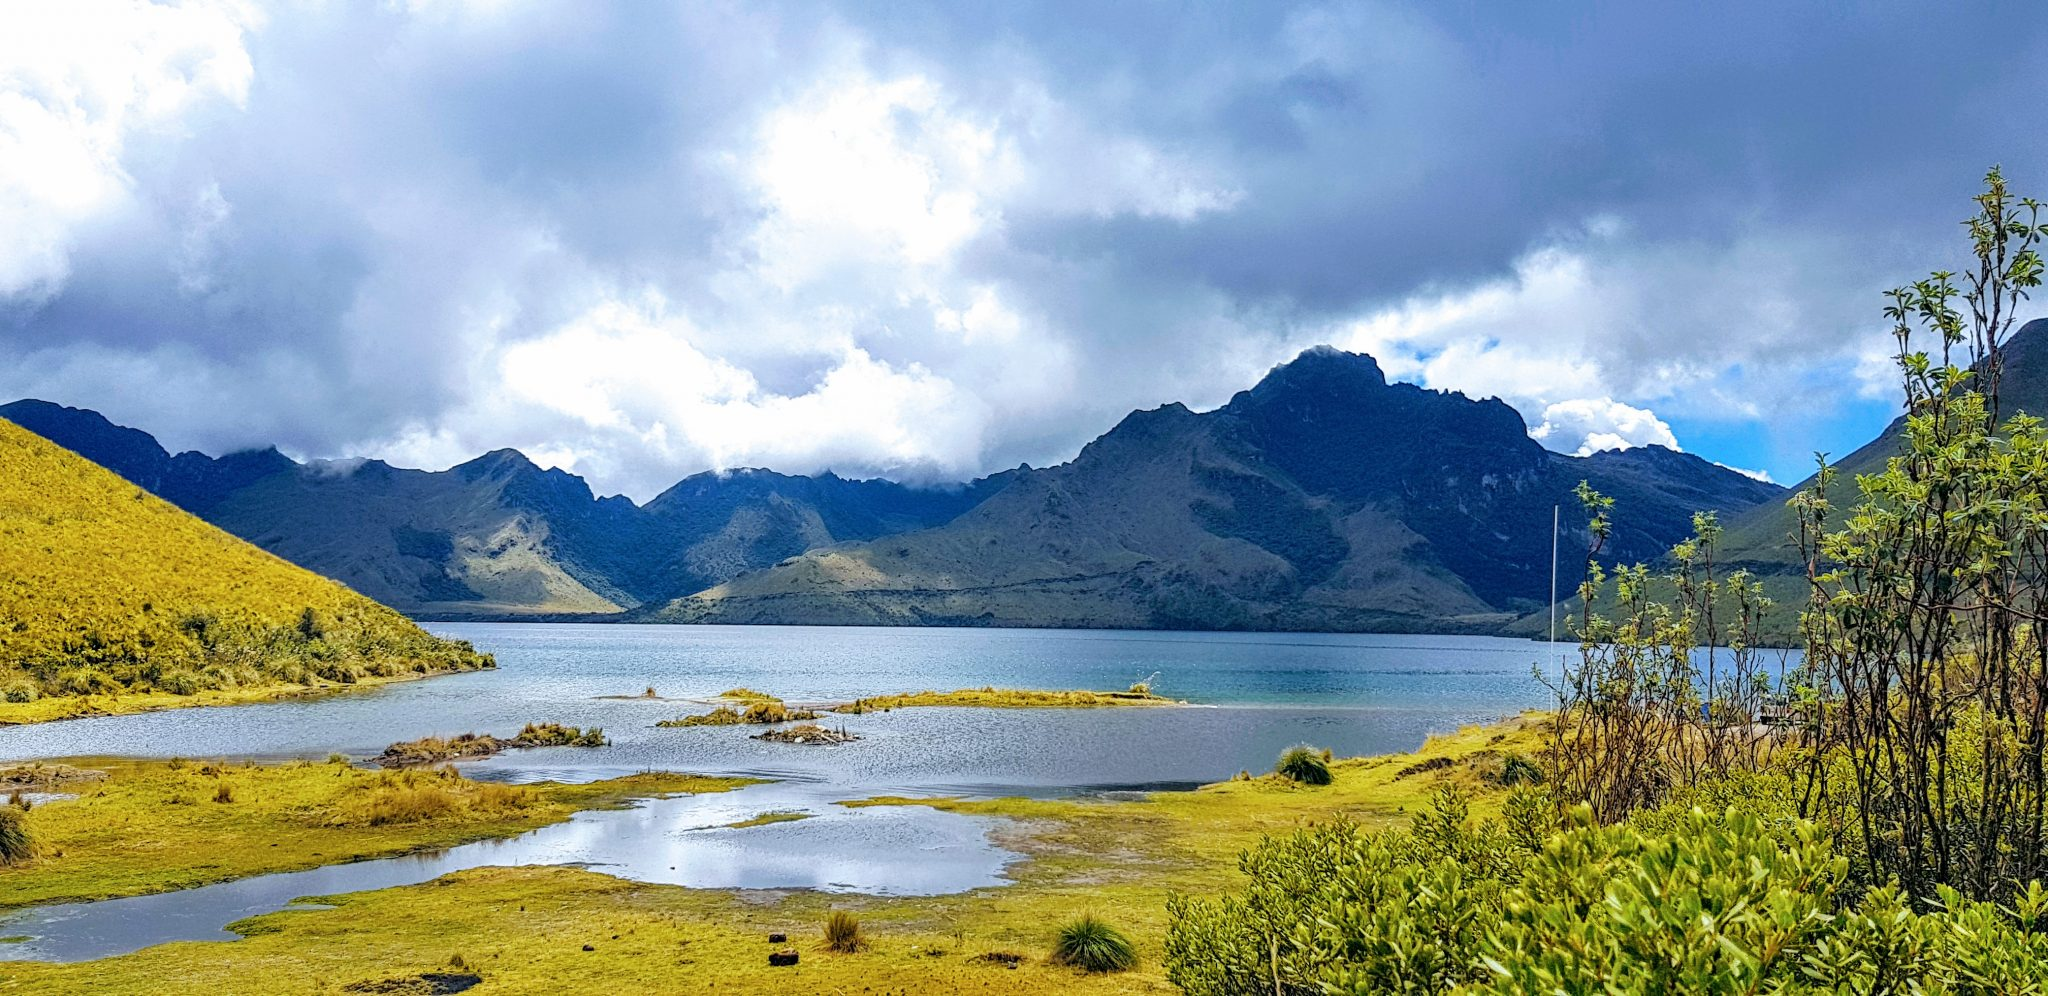 Mojanda Lagoon Day Tour from Quito